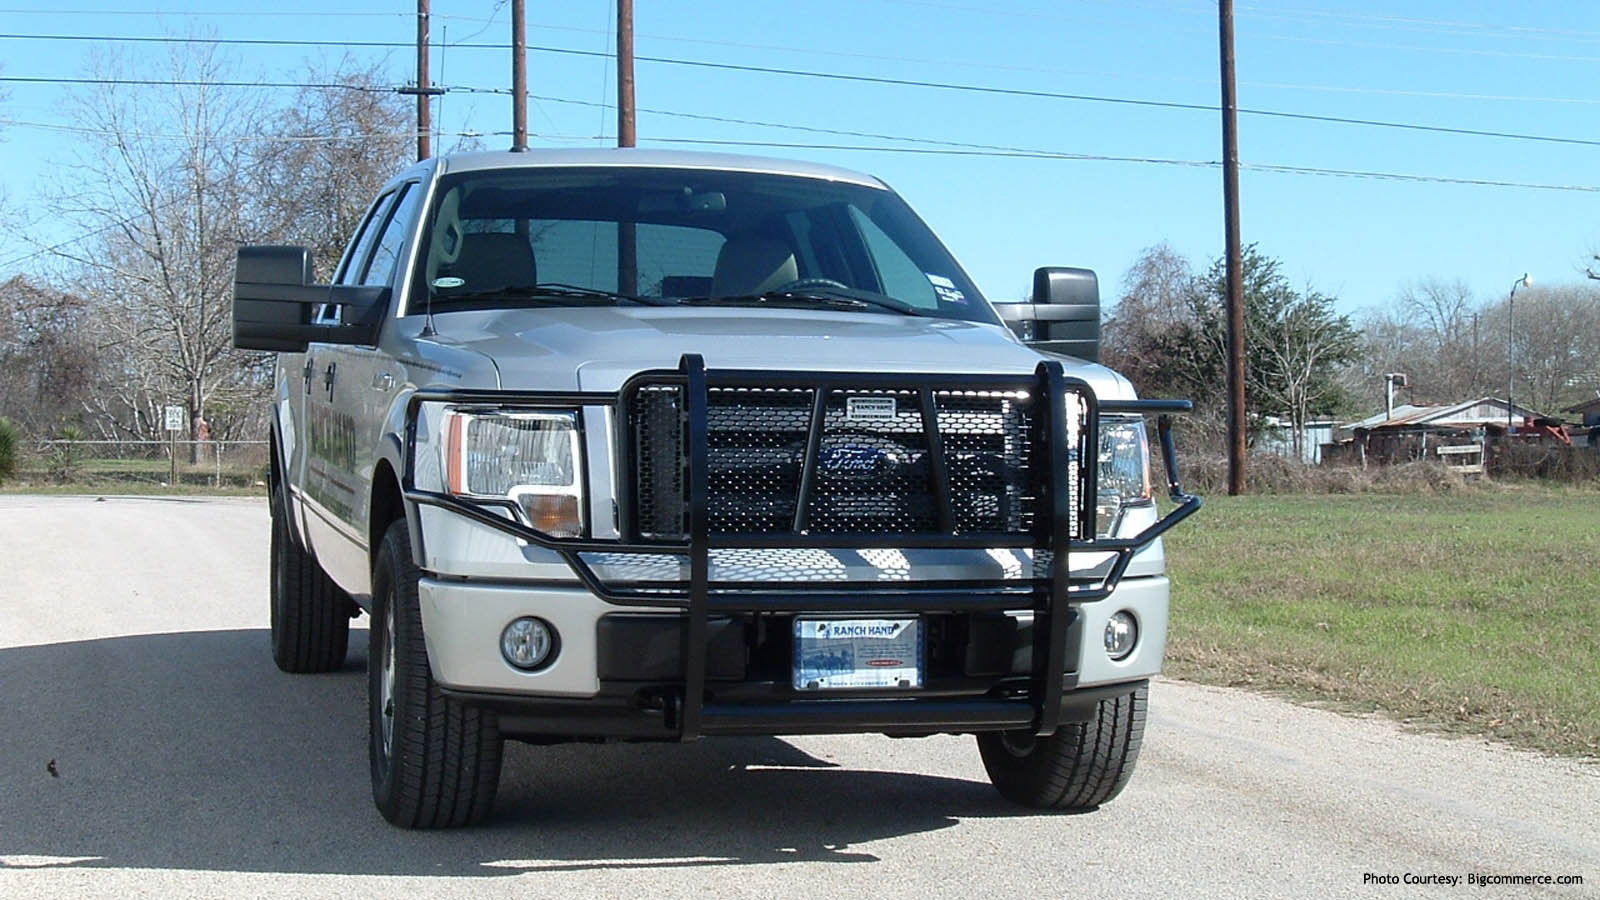 Ford Truck Grille Guard